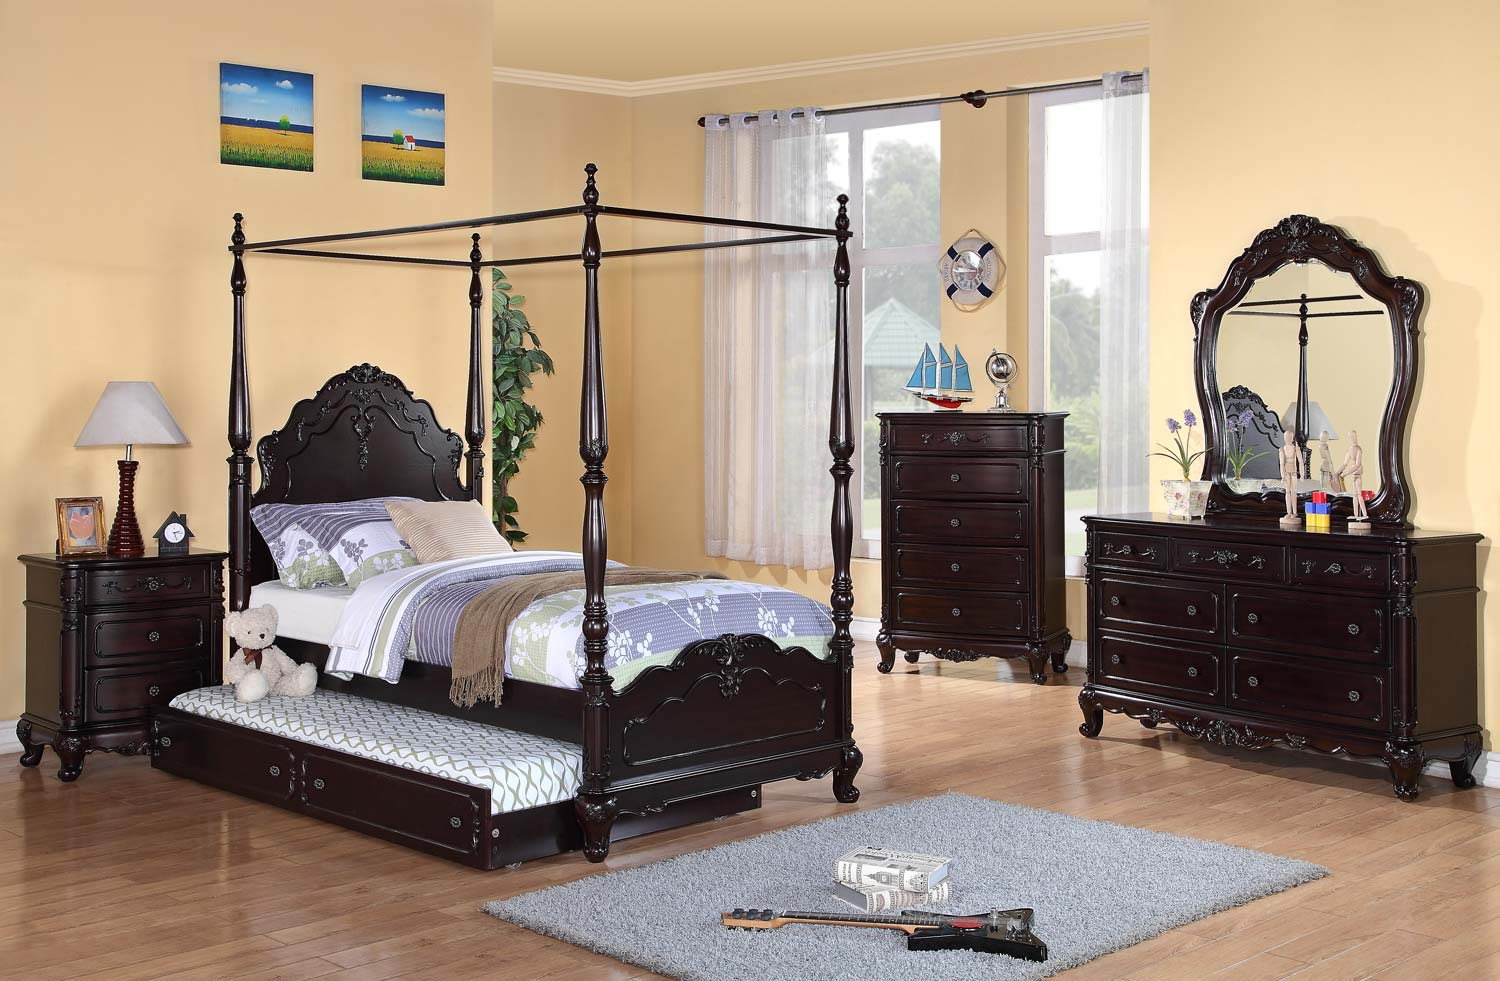 Cinderella Poster Bedroom Set   Dark Cherry. Homelegance Cinderella Bedroom Collection   Ecru B1386 at